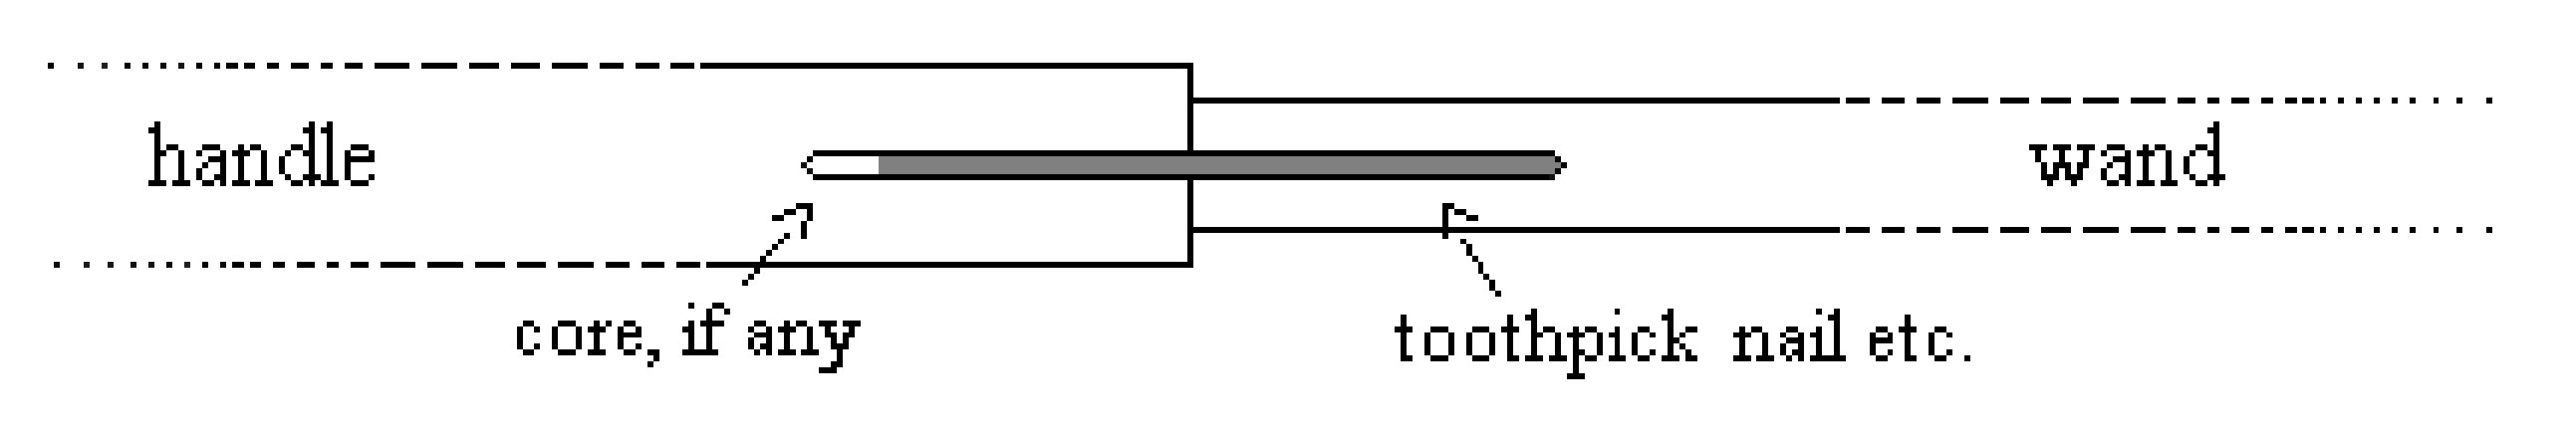 Figure 9- Toothpick connection